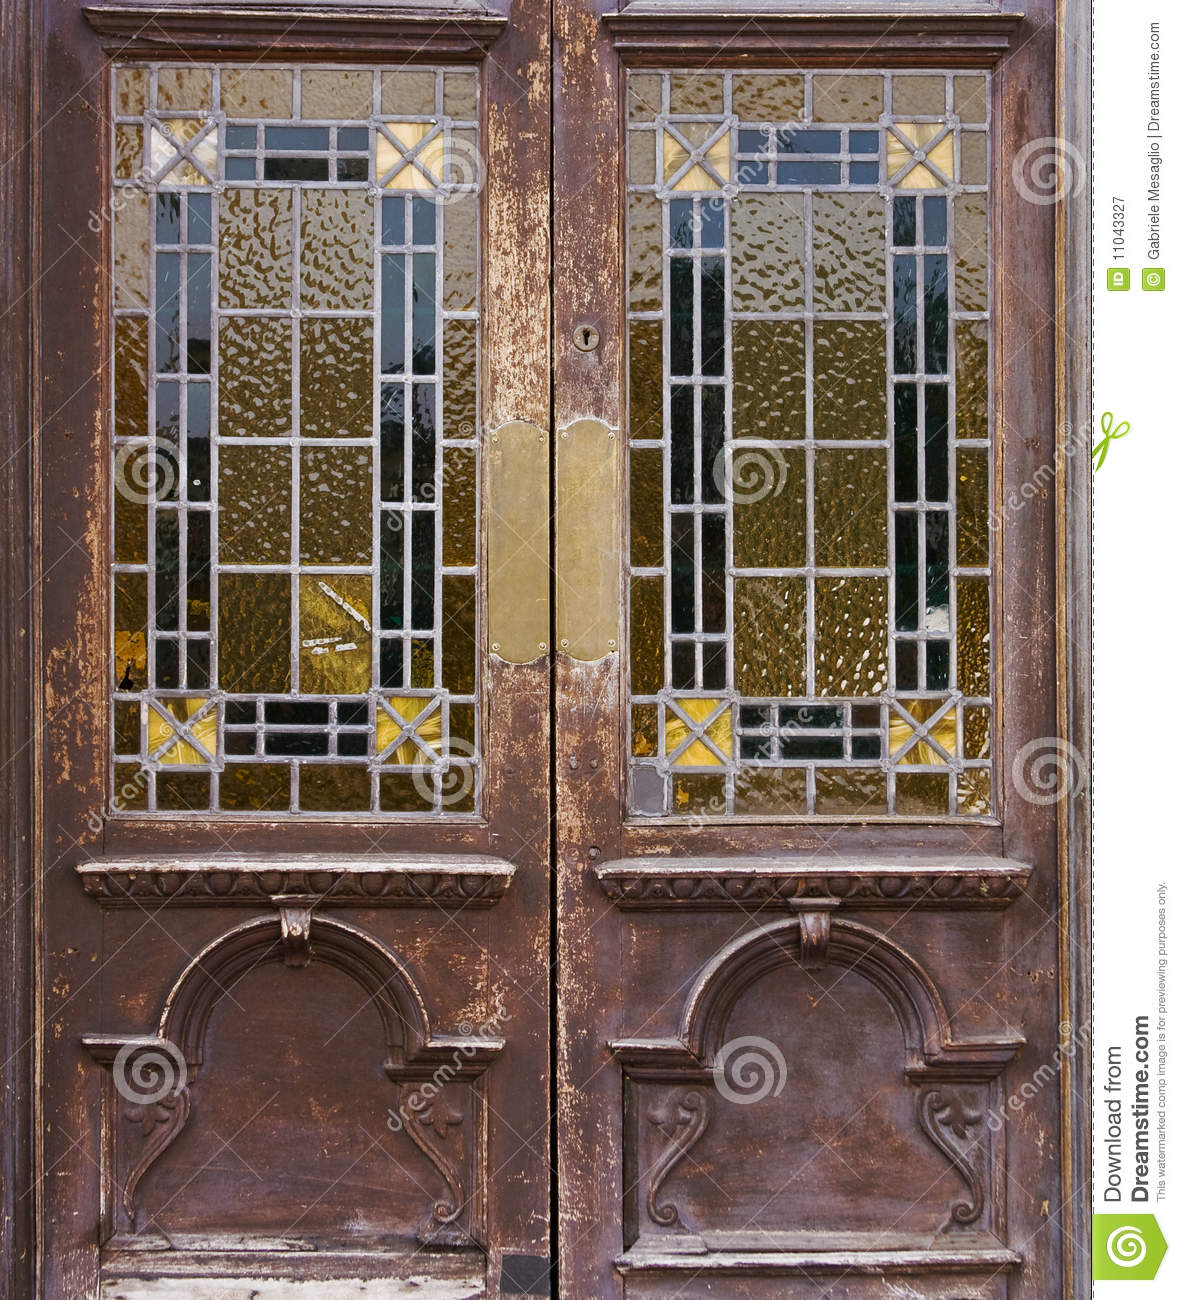 Old window door & Old window door stock image. Image of down boarded ruined - 11043327